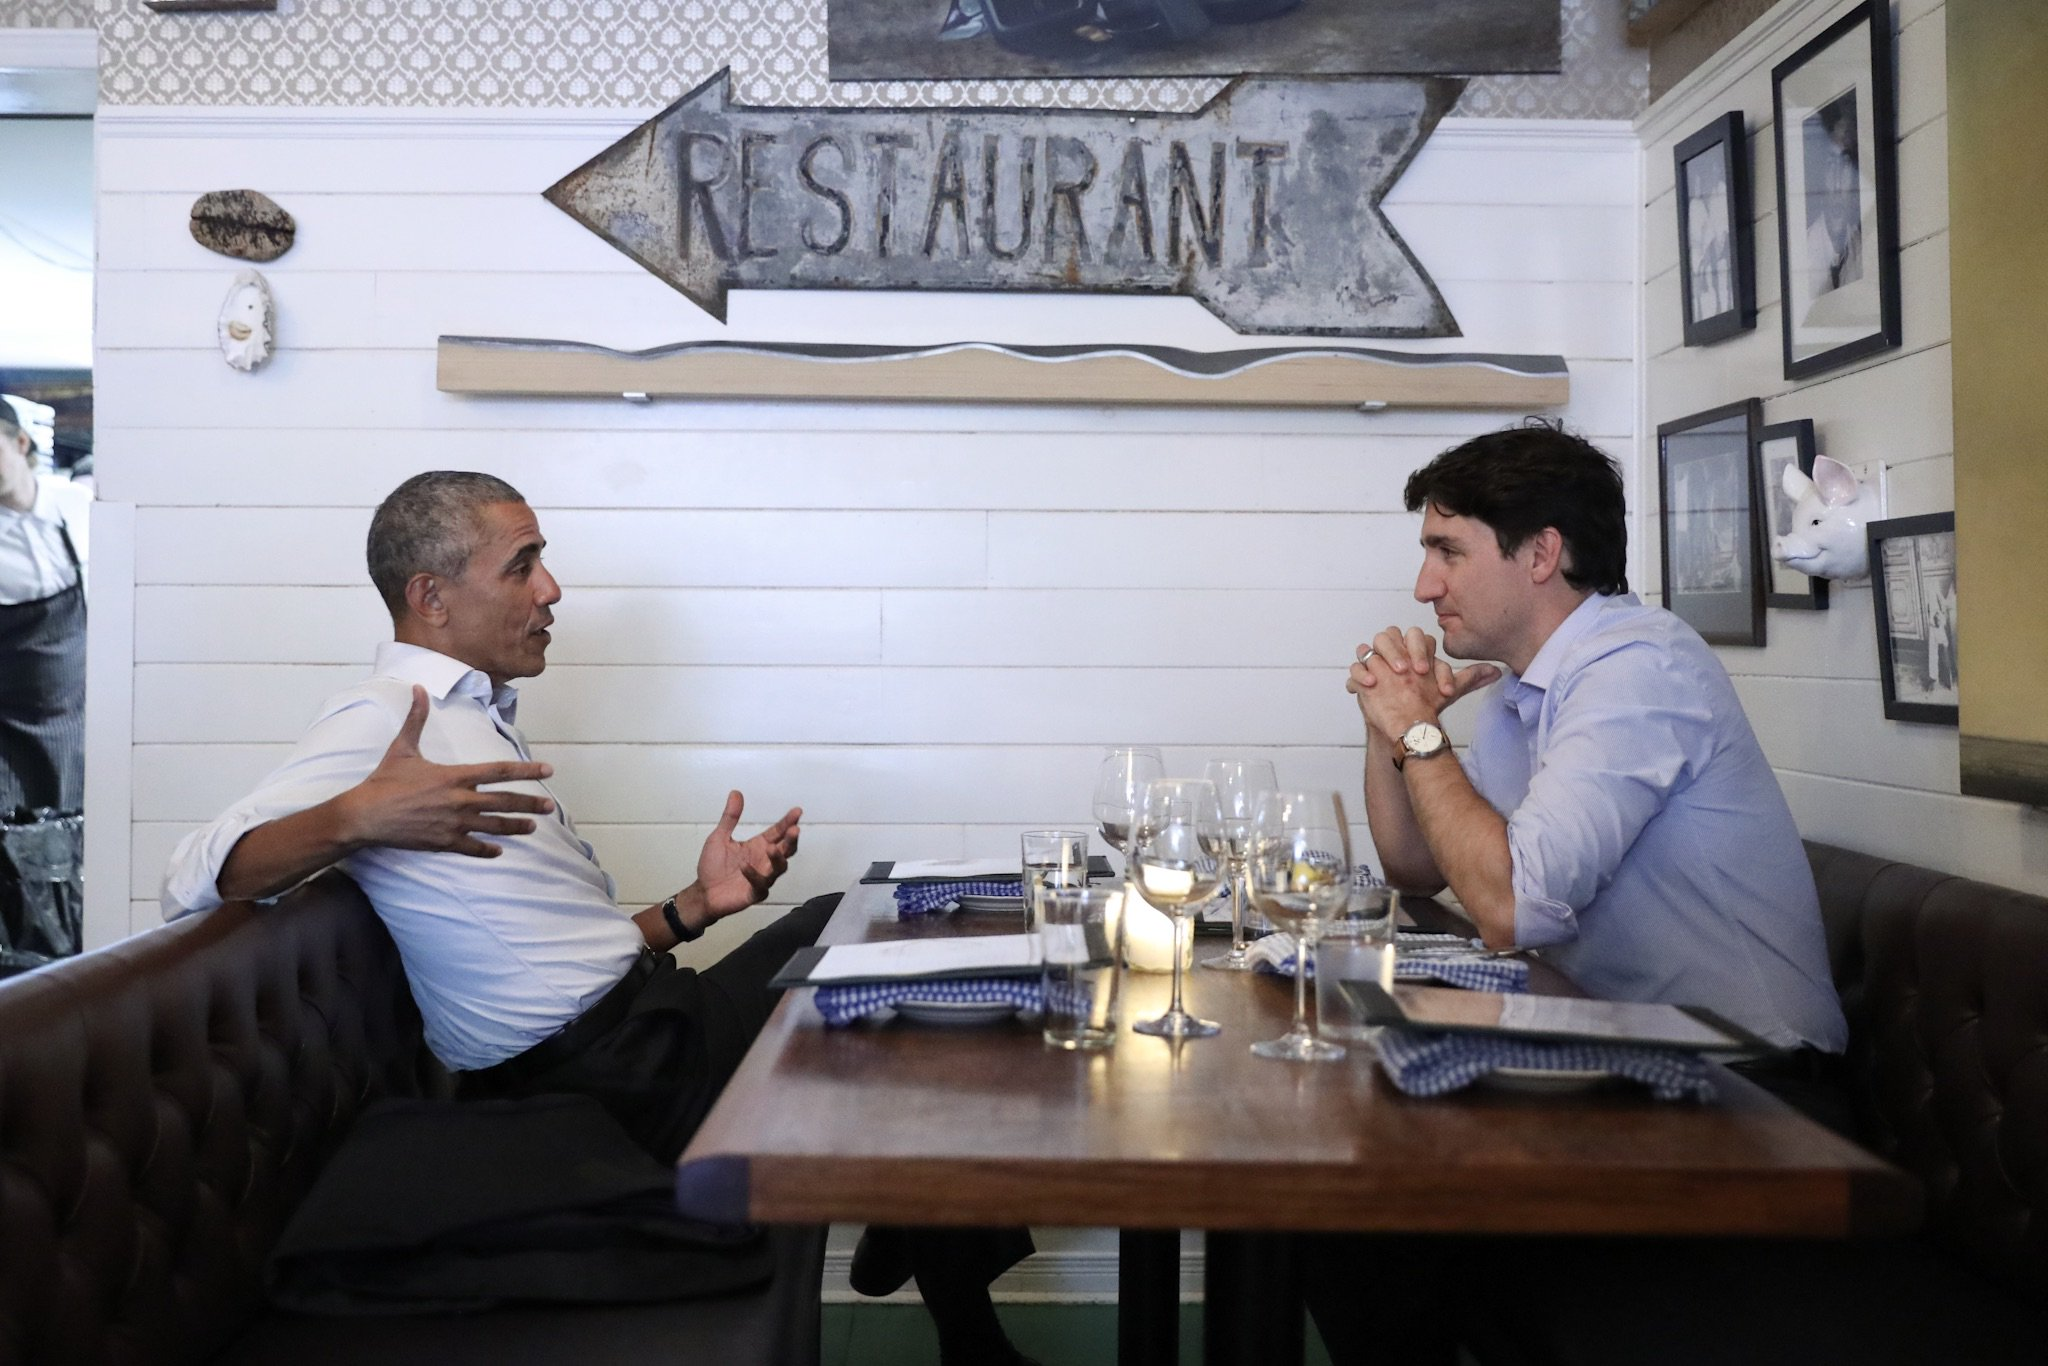 The Obamas in retirement: Obama and Trudeau at the Chili Liverpool House Restuarant in Montreal, Canada